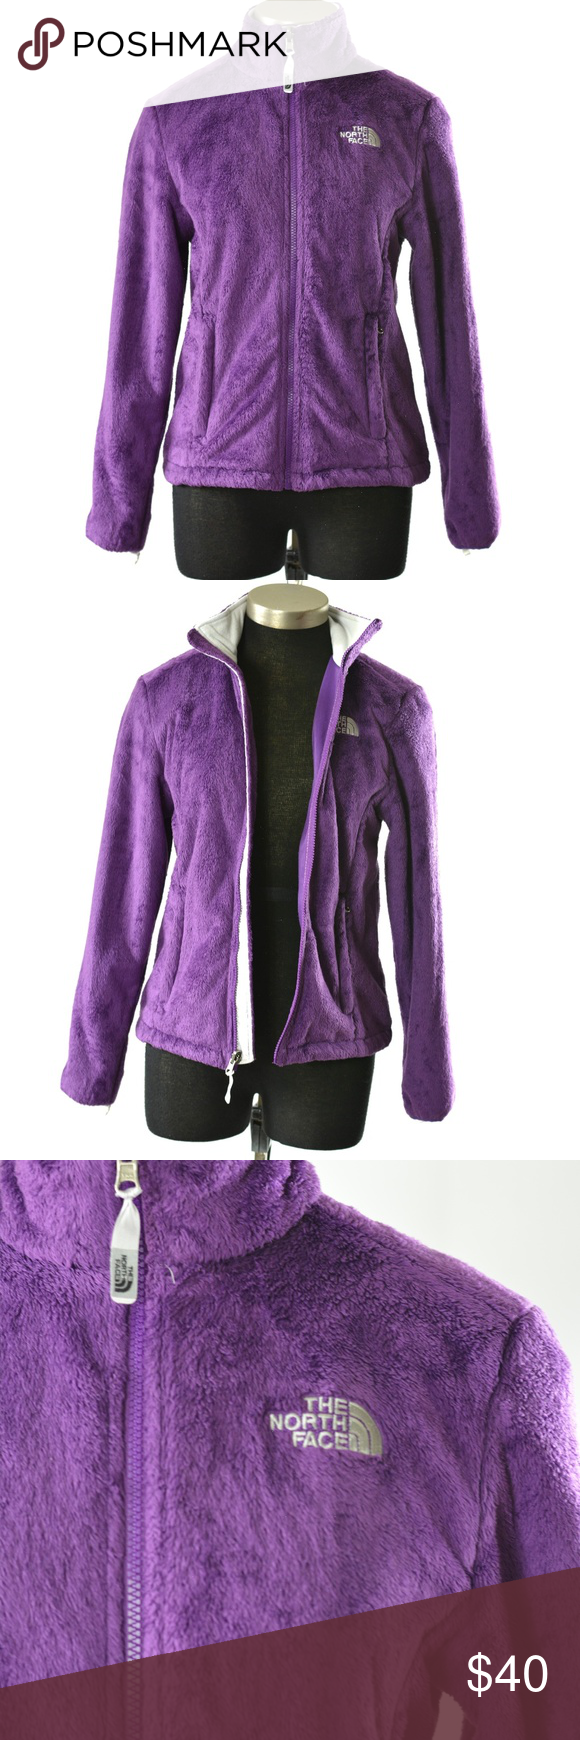 North Face Jacket Osito Fleece Purple Size Small North Face Osito Jacket Features High Pile Fleece With Tailored Waist North Face Jacket The North Face Fleece [ 1740 x 580 Pixel ]